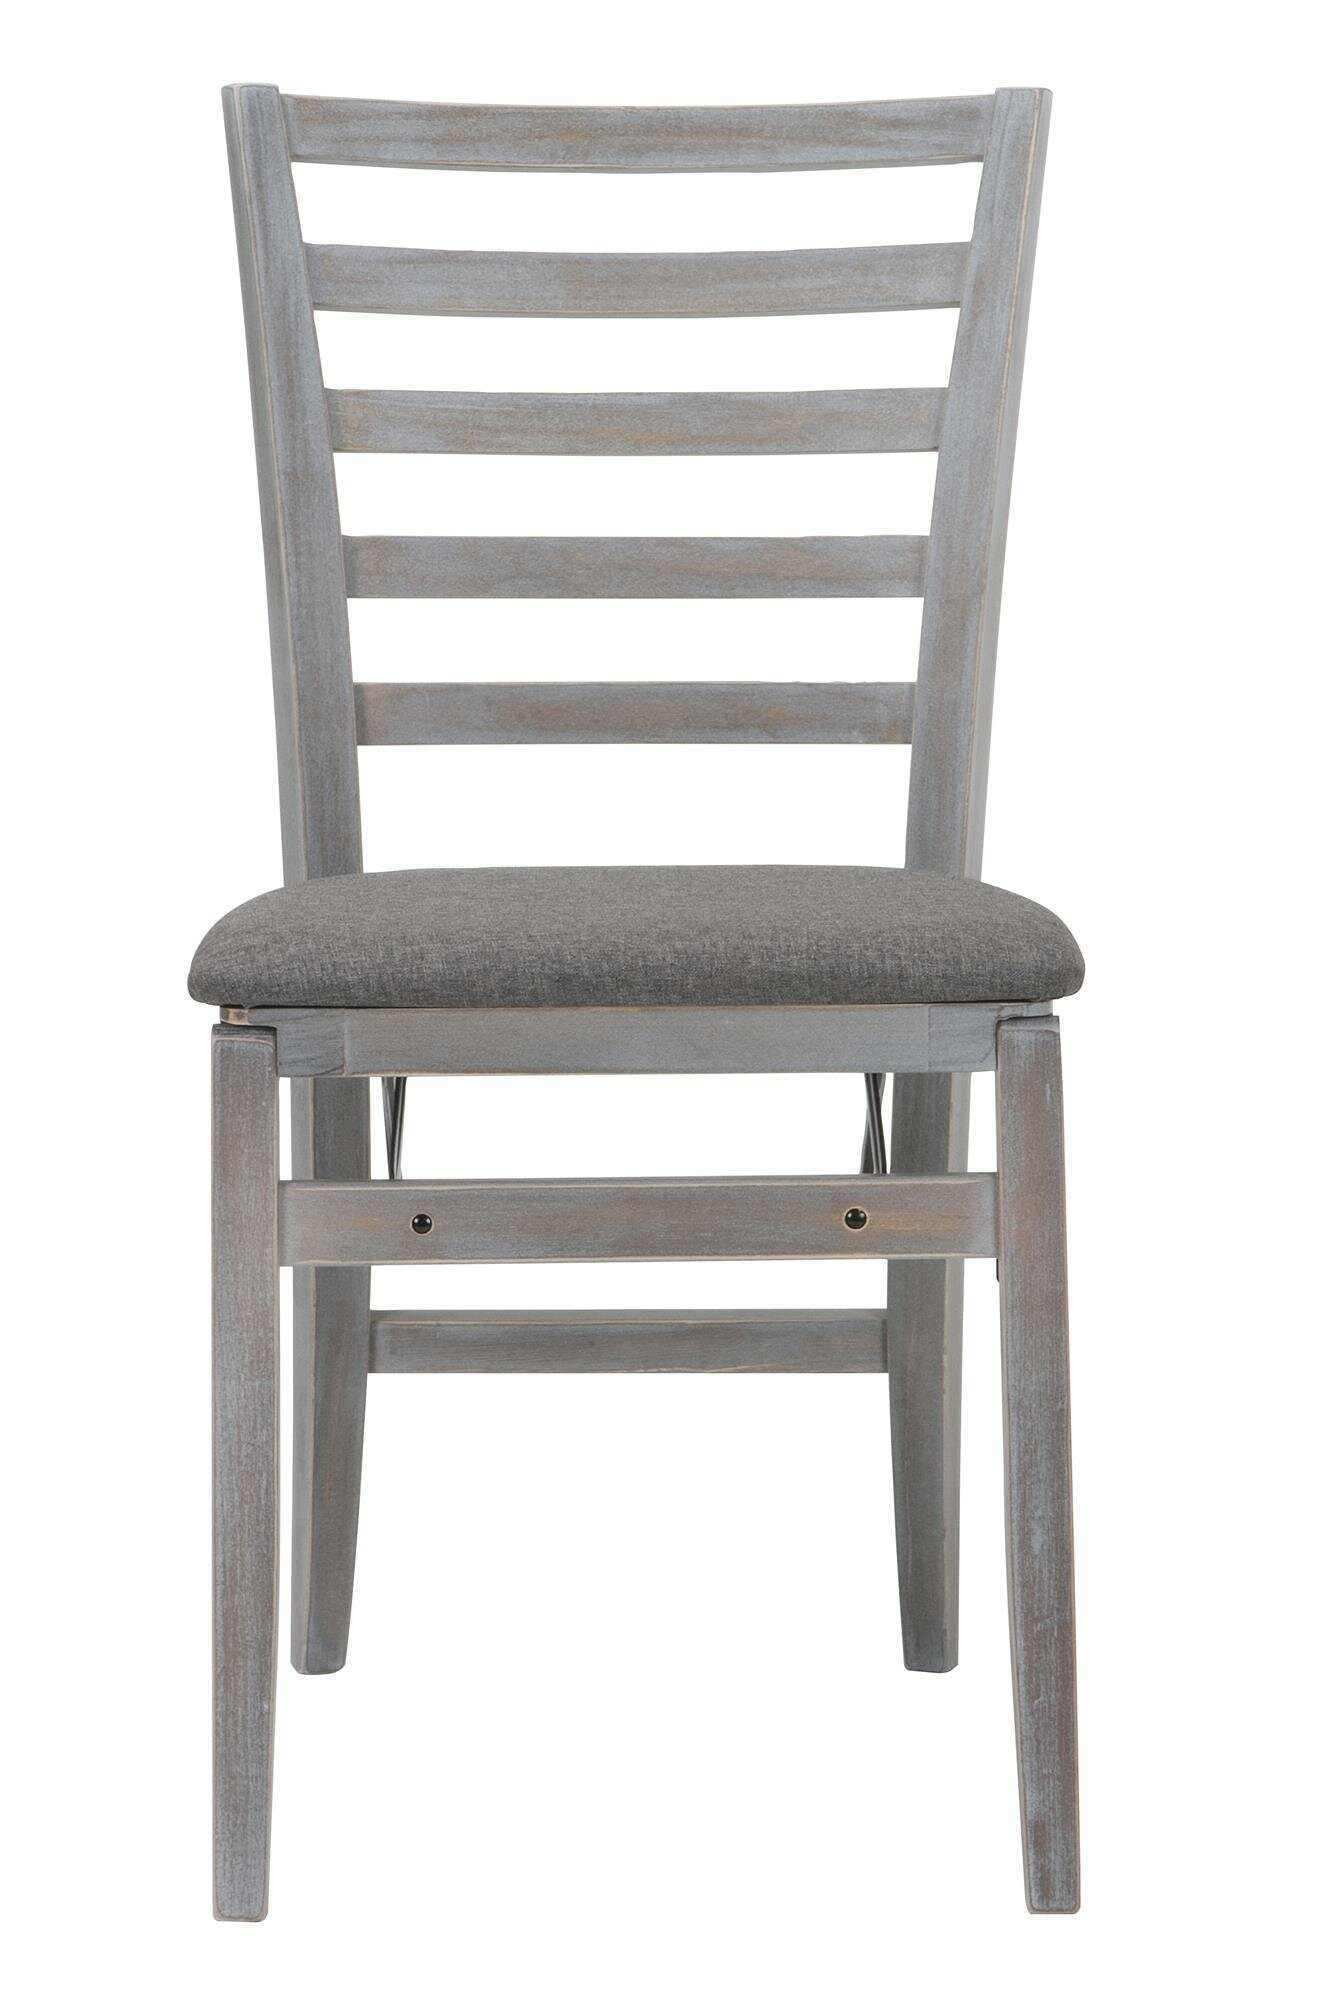 Cosco Home and fice Contoured Back Wood Padded Folding Chair